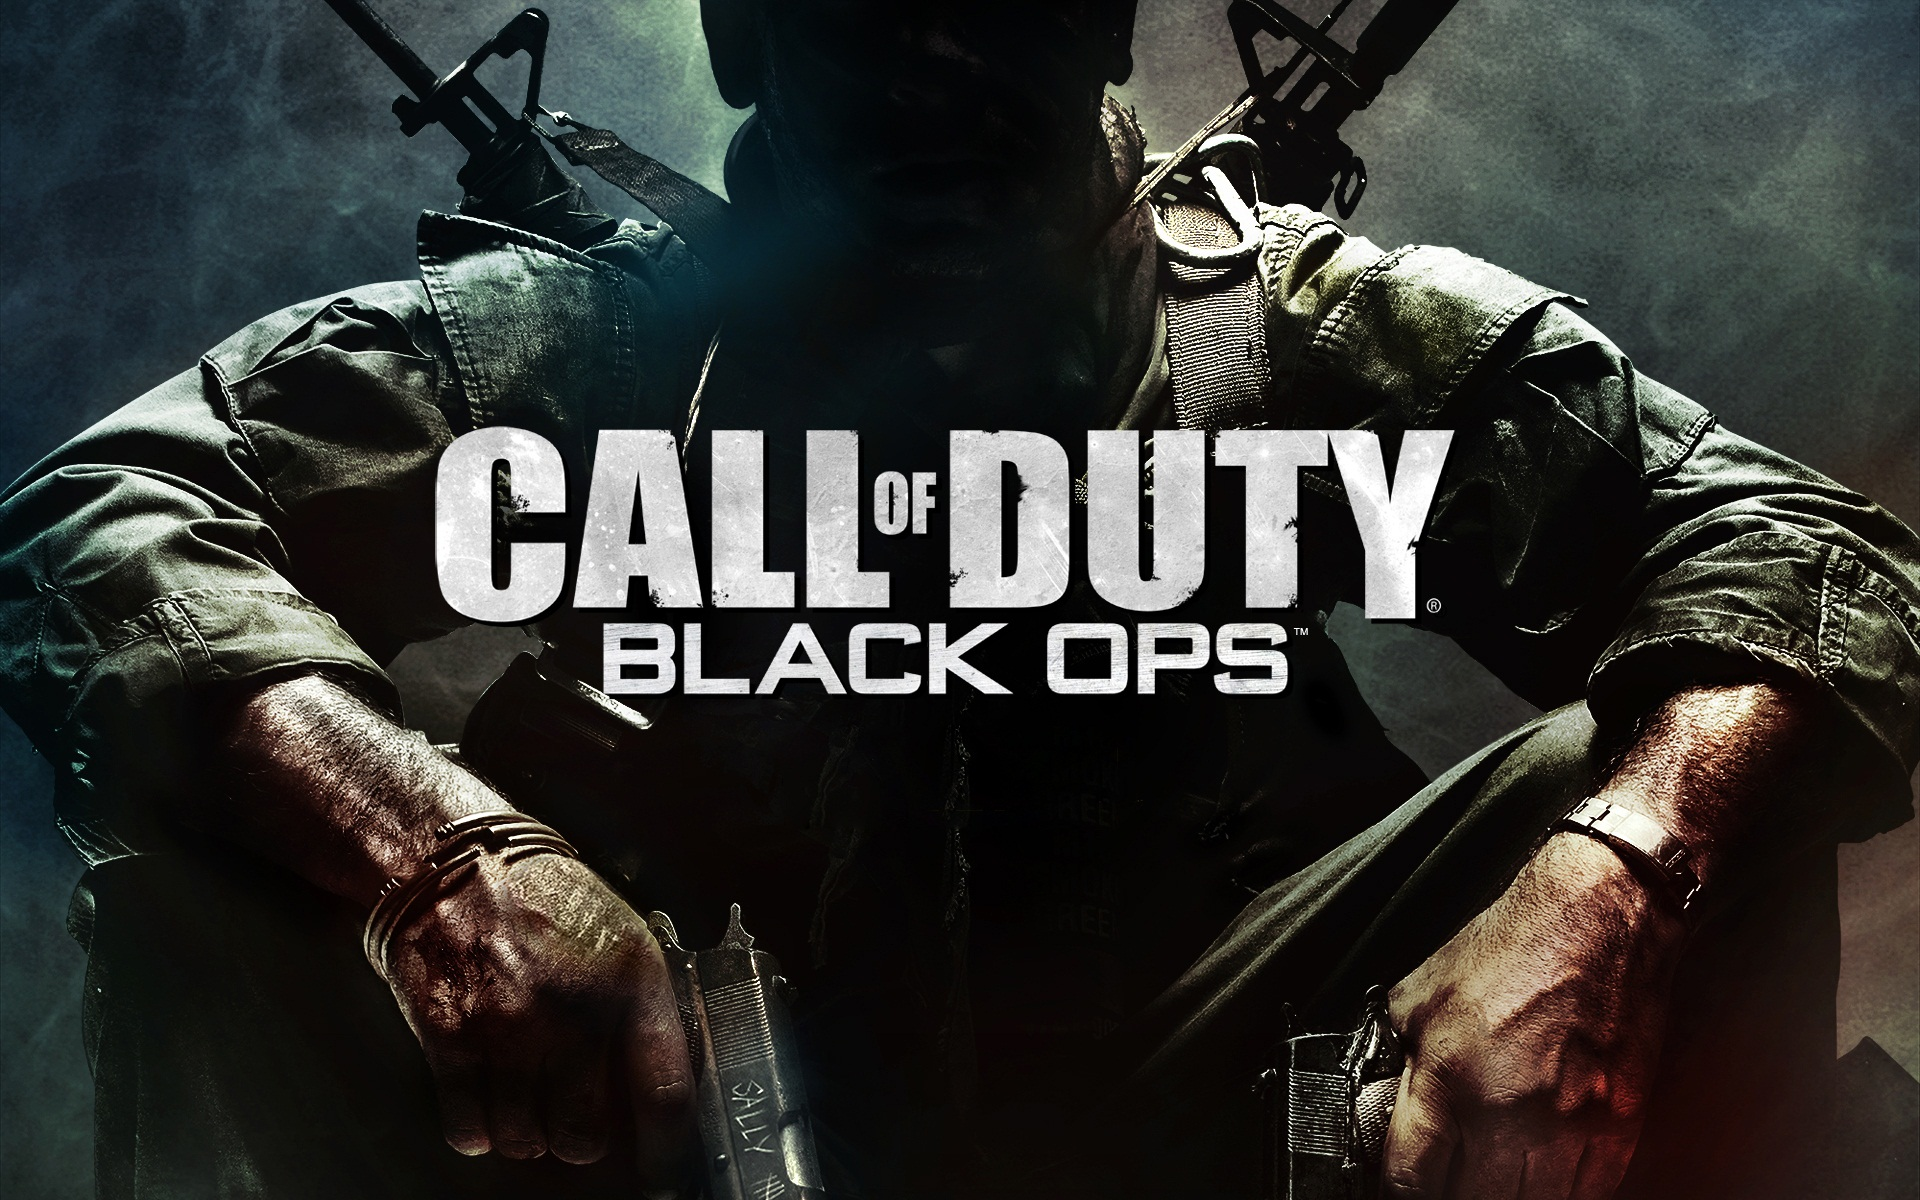 call of duty black ops wallpaper Wallpapers hd black ops